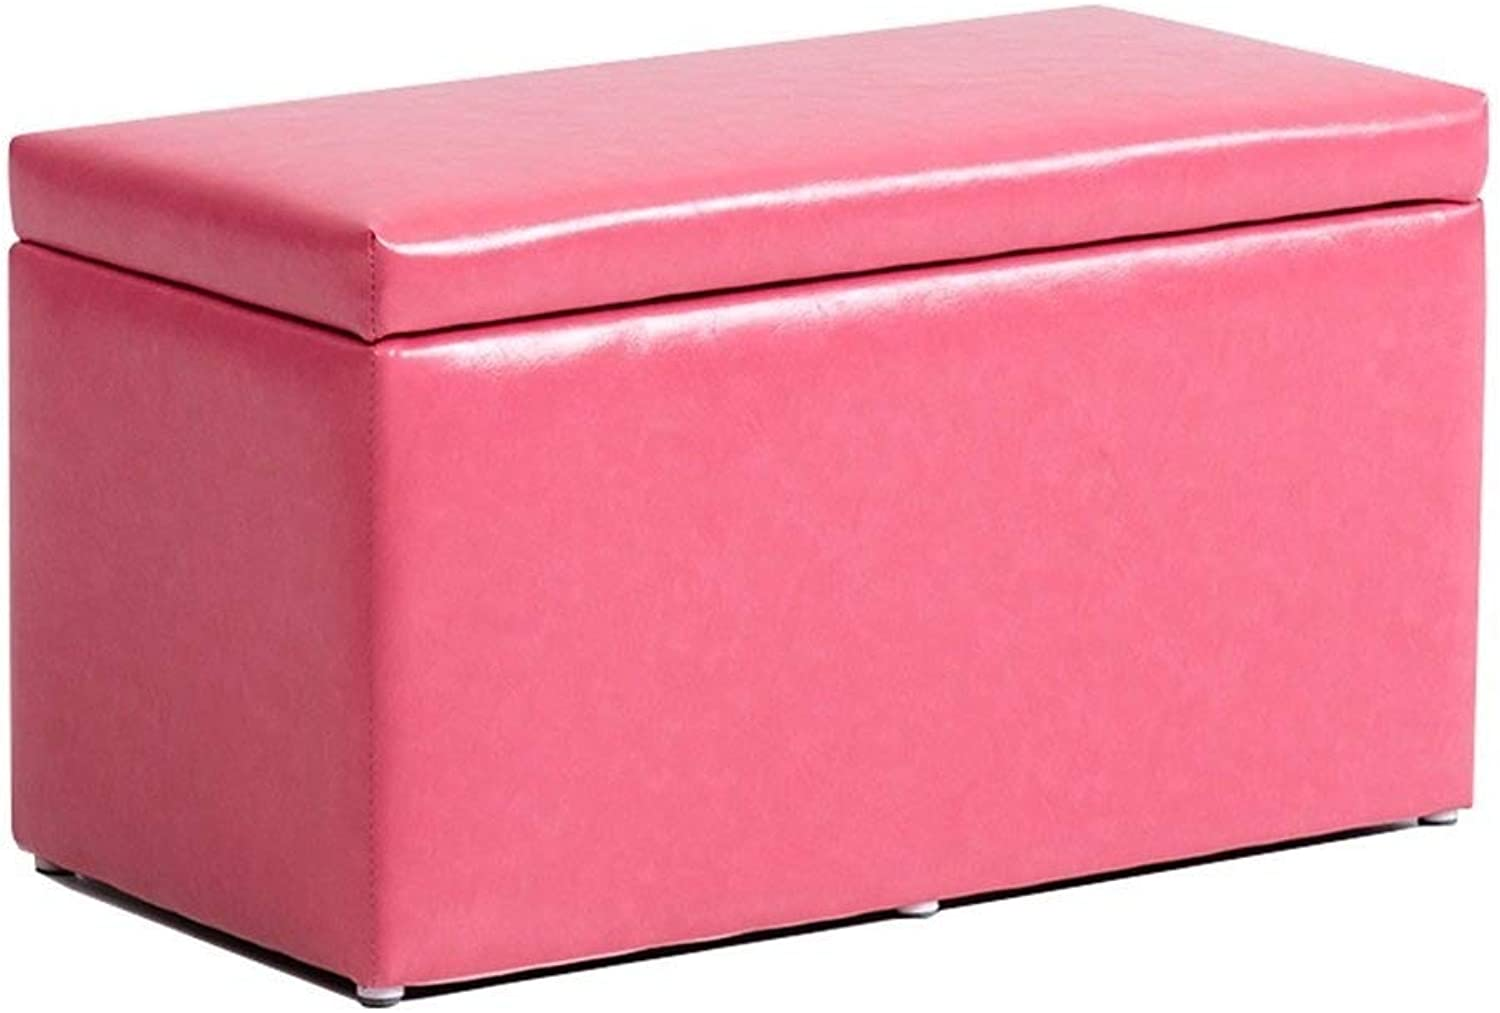 Change shoes Stool Storage Chest Toy Box Removable Cover Portable Seat Upholstered Stool Versatile Space-Saving Cubes HENGXIAO (color   Pink)